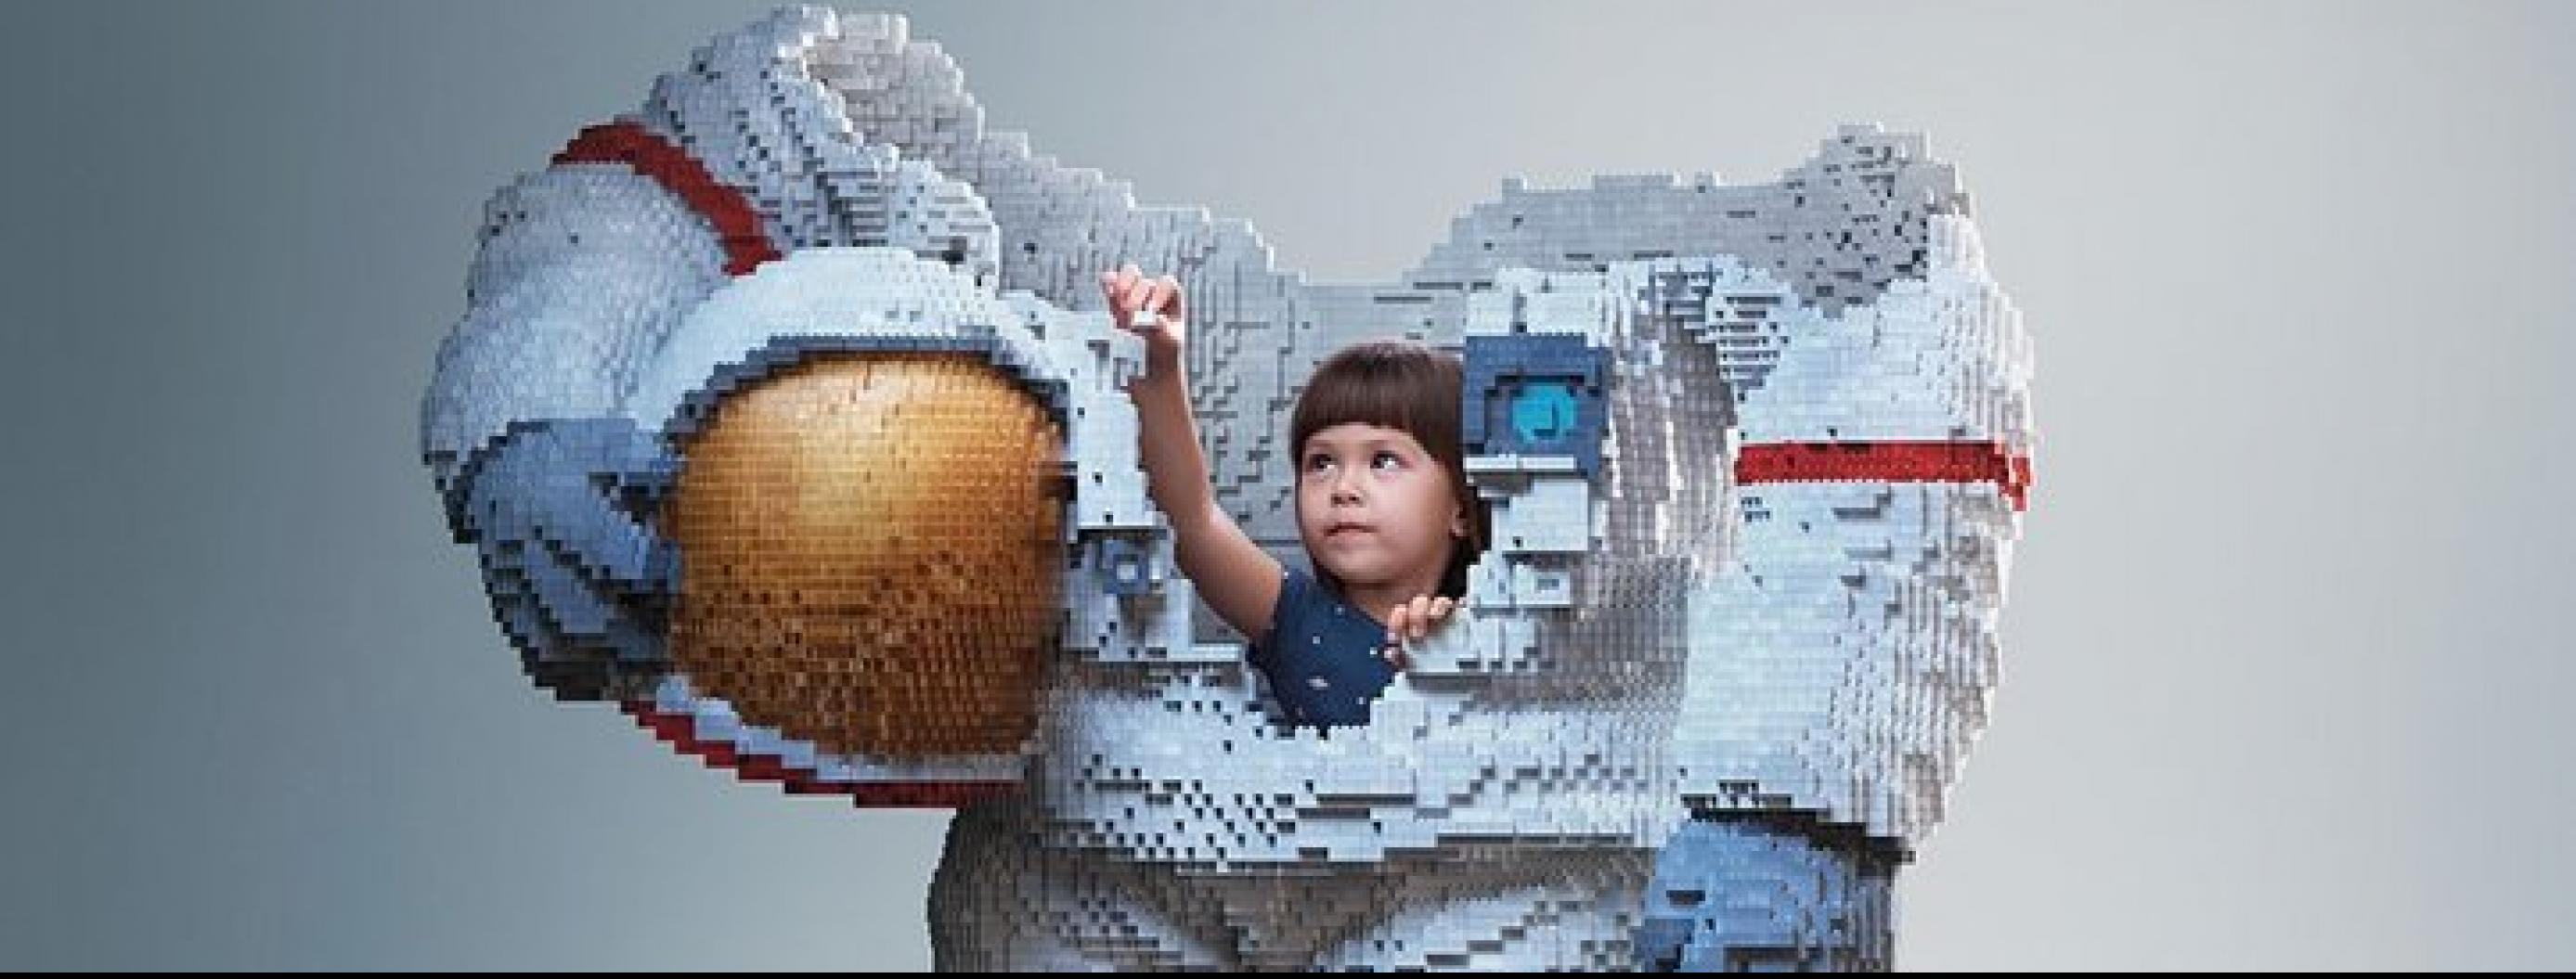 Lego Just Scored Another Home Run on Advertising